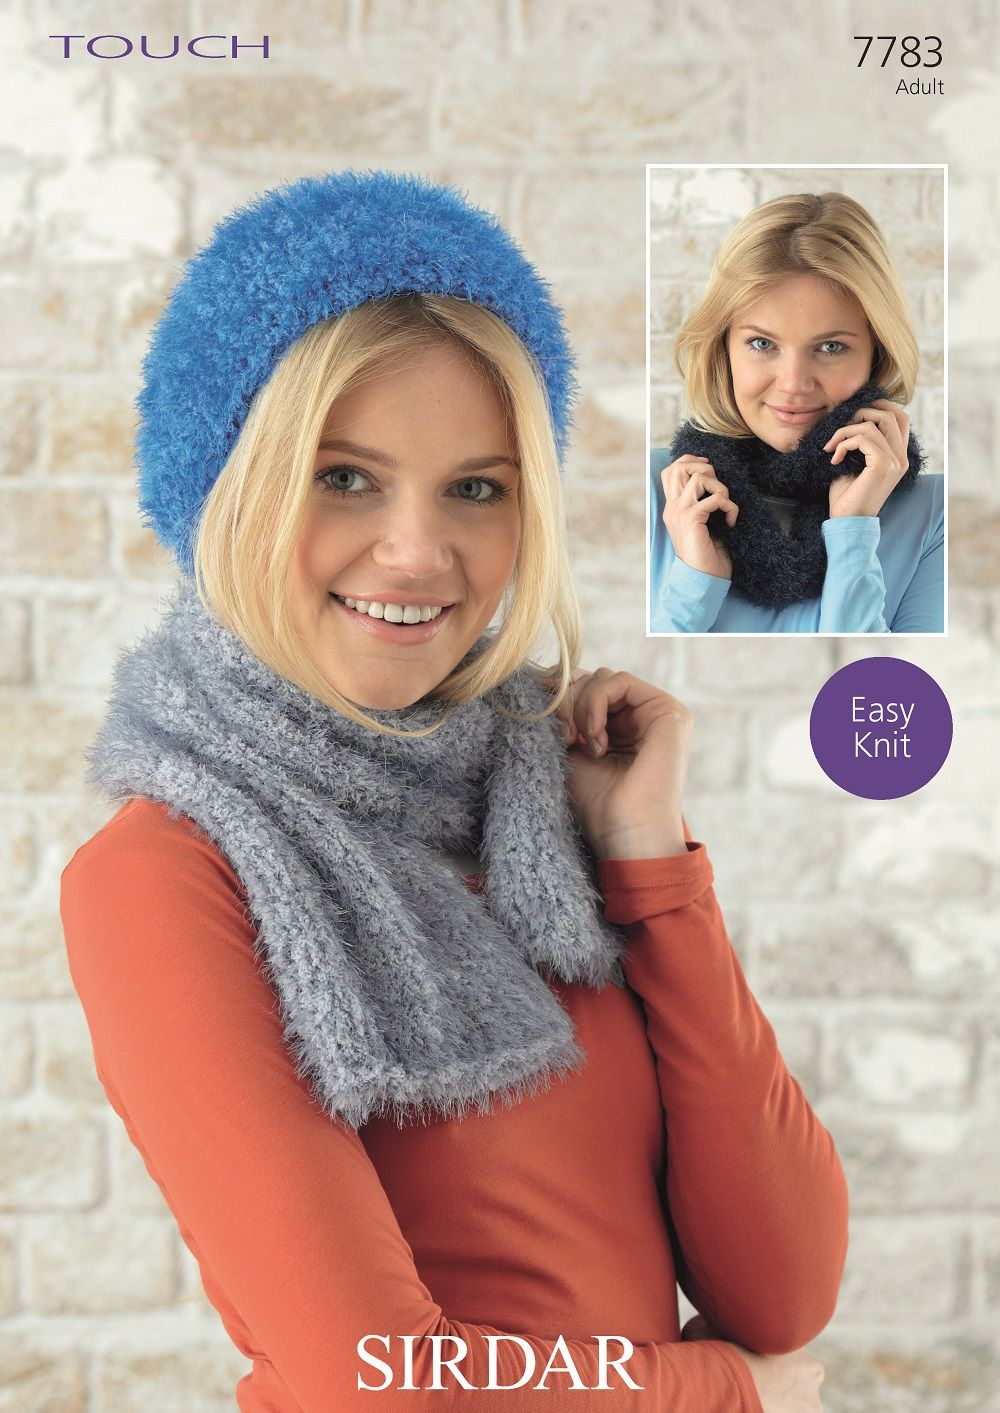 Sirdar Ladies Hat, Scarf and Snood Knitting Pattern in Sirdar Touch (7783P)  PDF